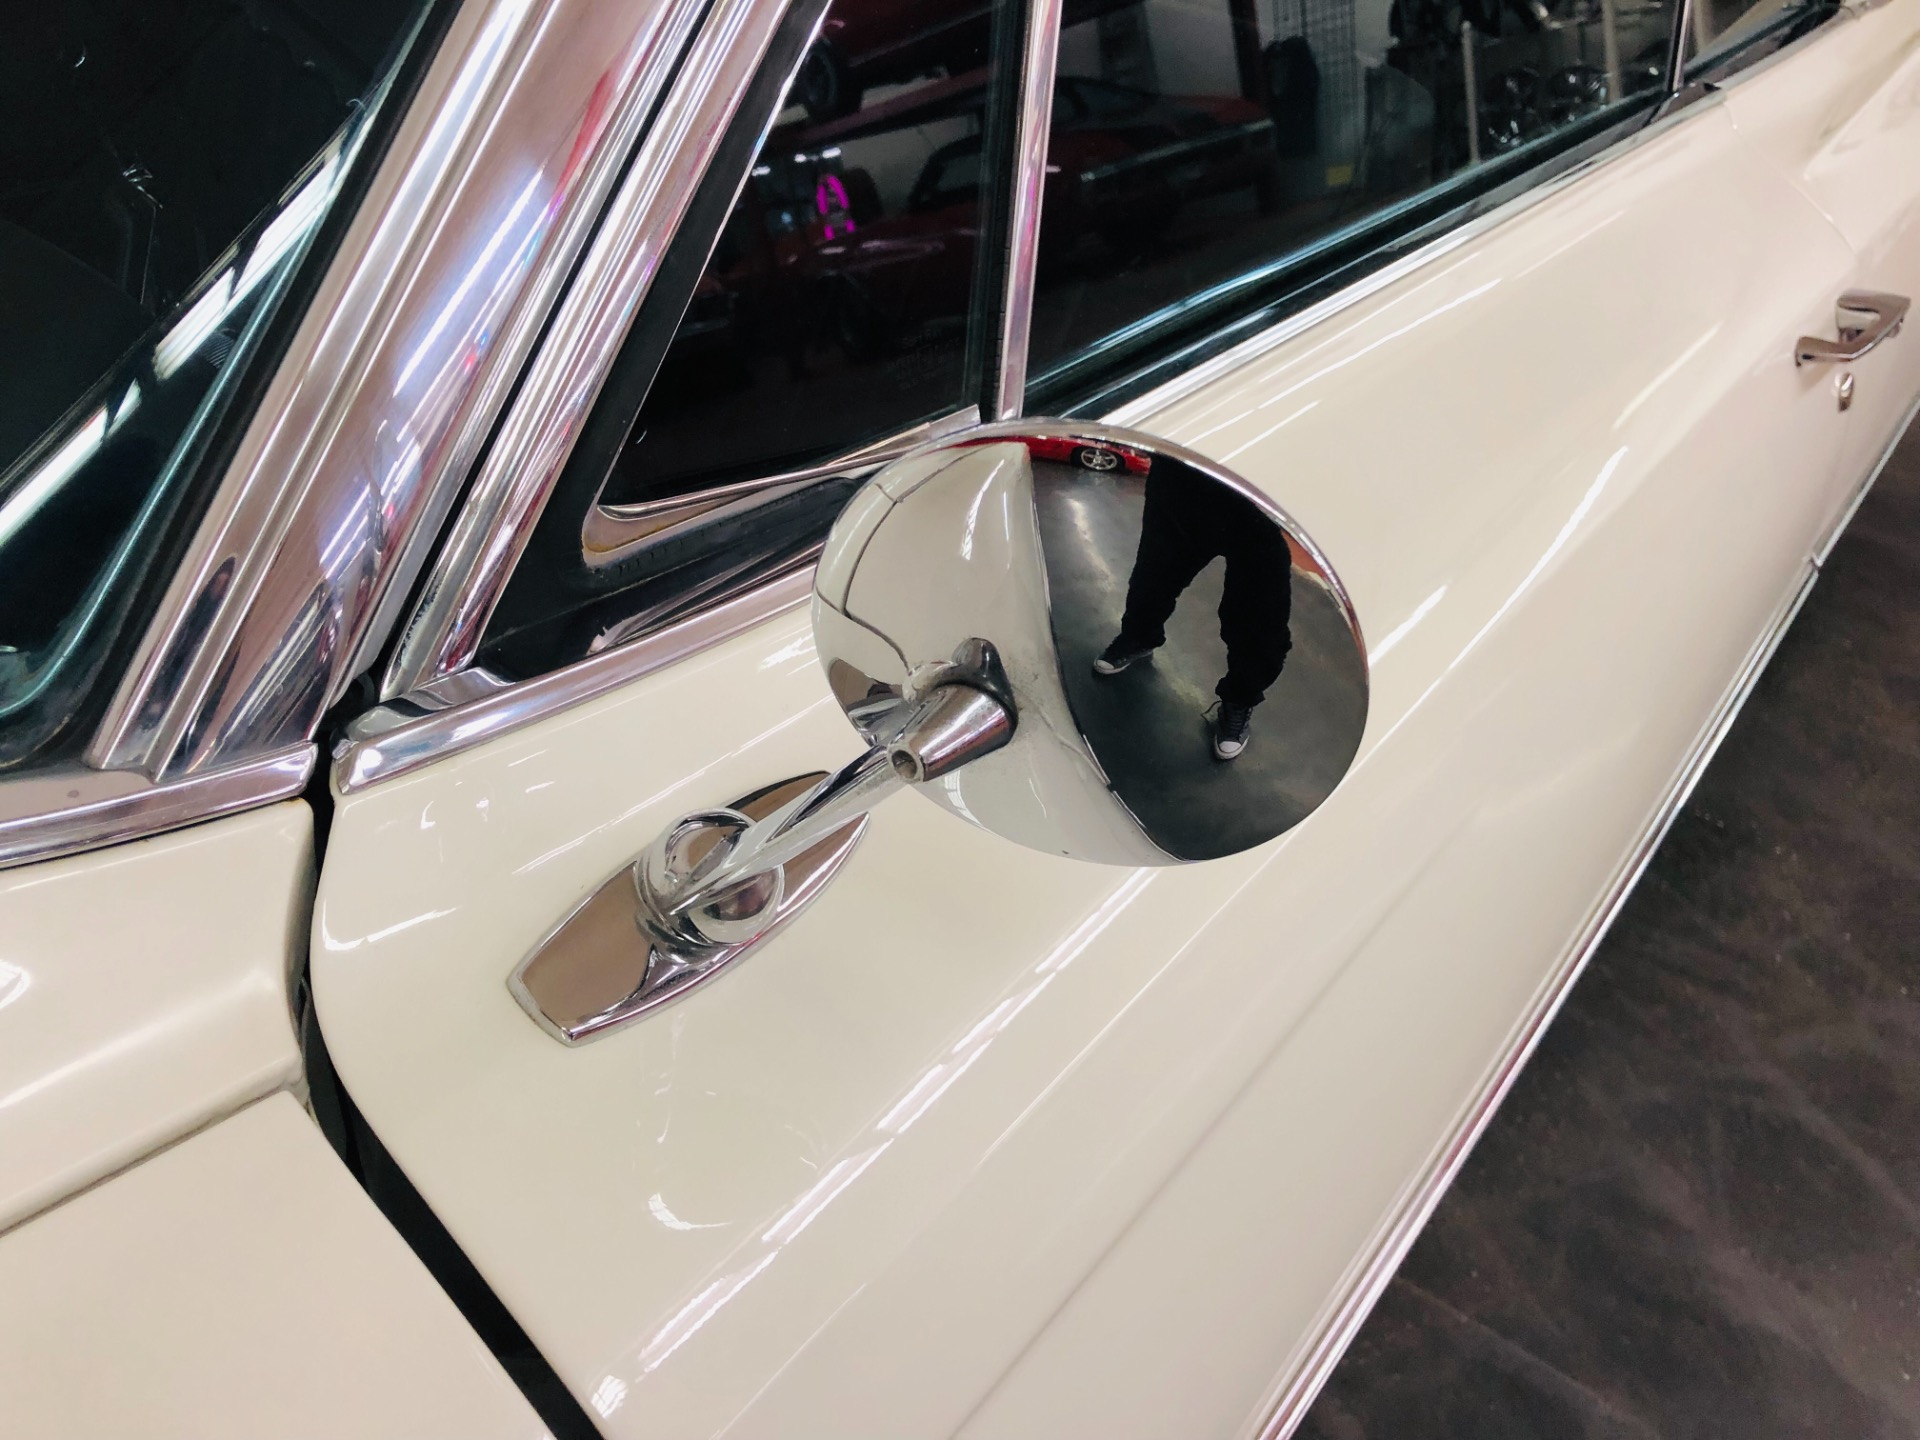 Used 1963 Cadillac DeVille -FRAME OFF RESTORED 2017 CONVERTIBLE FUN-NUMBERS MATCHING- | Mundelein, IL